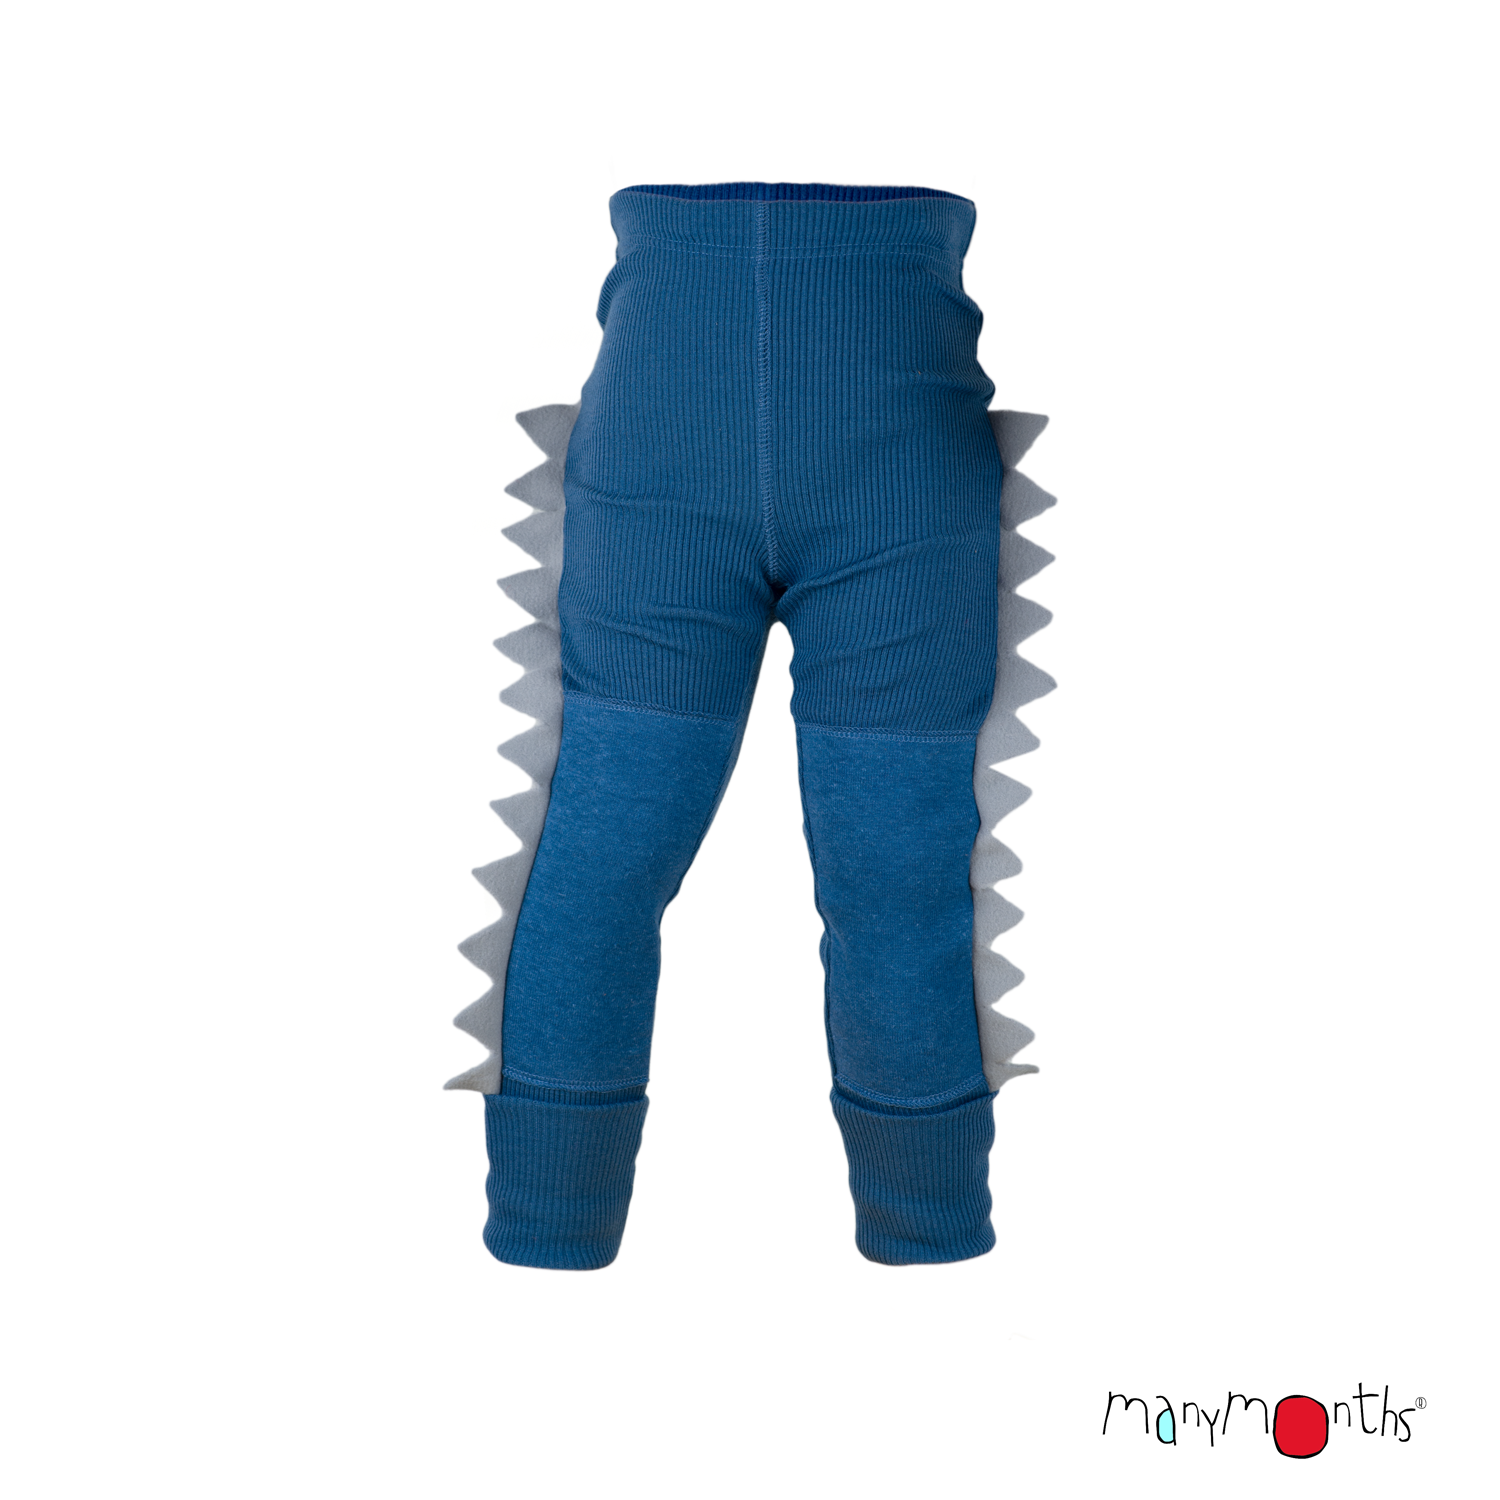 ManyMonths Natural Woollies Dino Unisex Leggings with knee patches UNiQUE